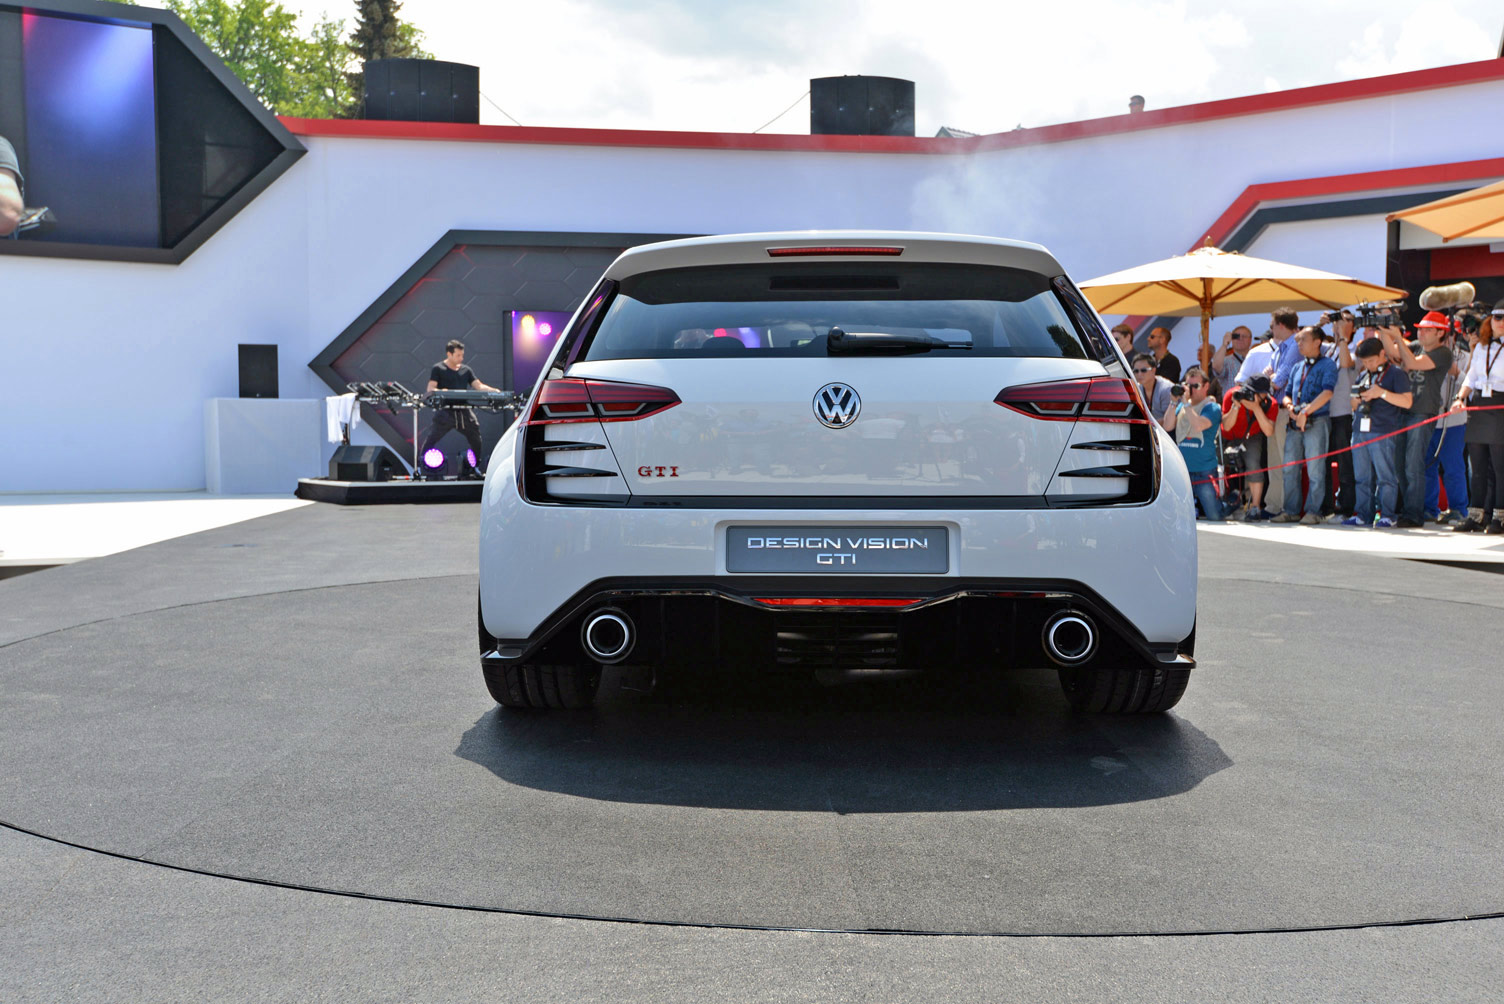 volkswagen-design-vision-gti-worthersee-024